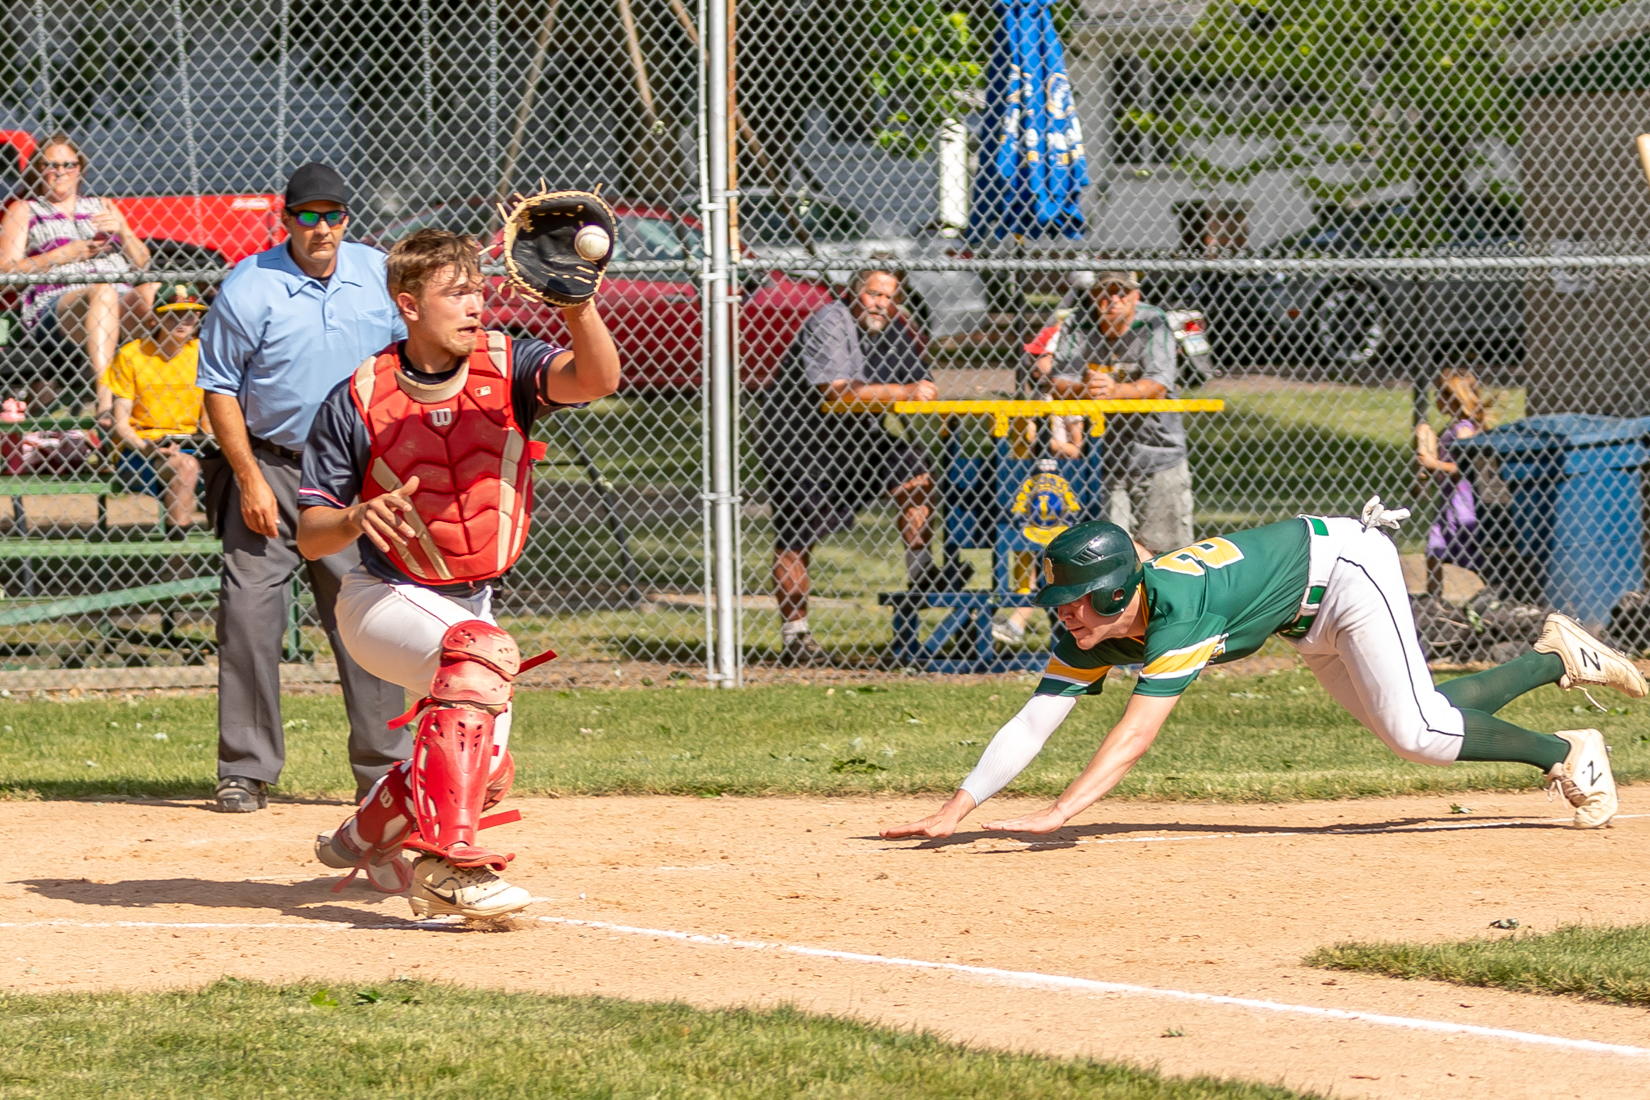 Catcher Ethan Schwarzrock does his best to beat the runner.